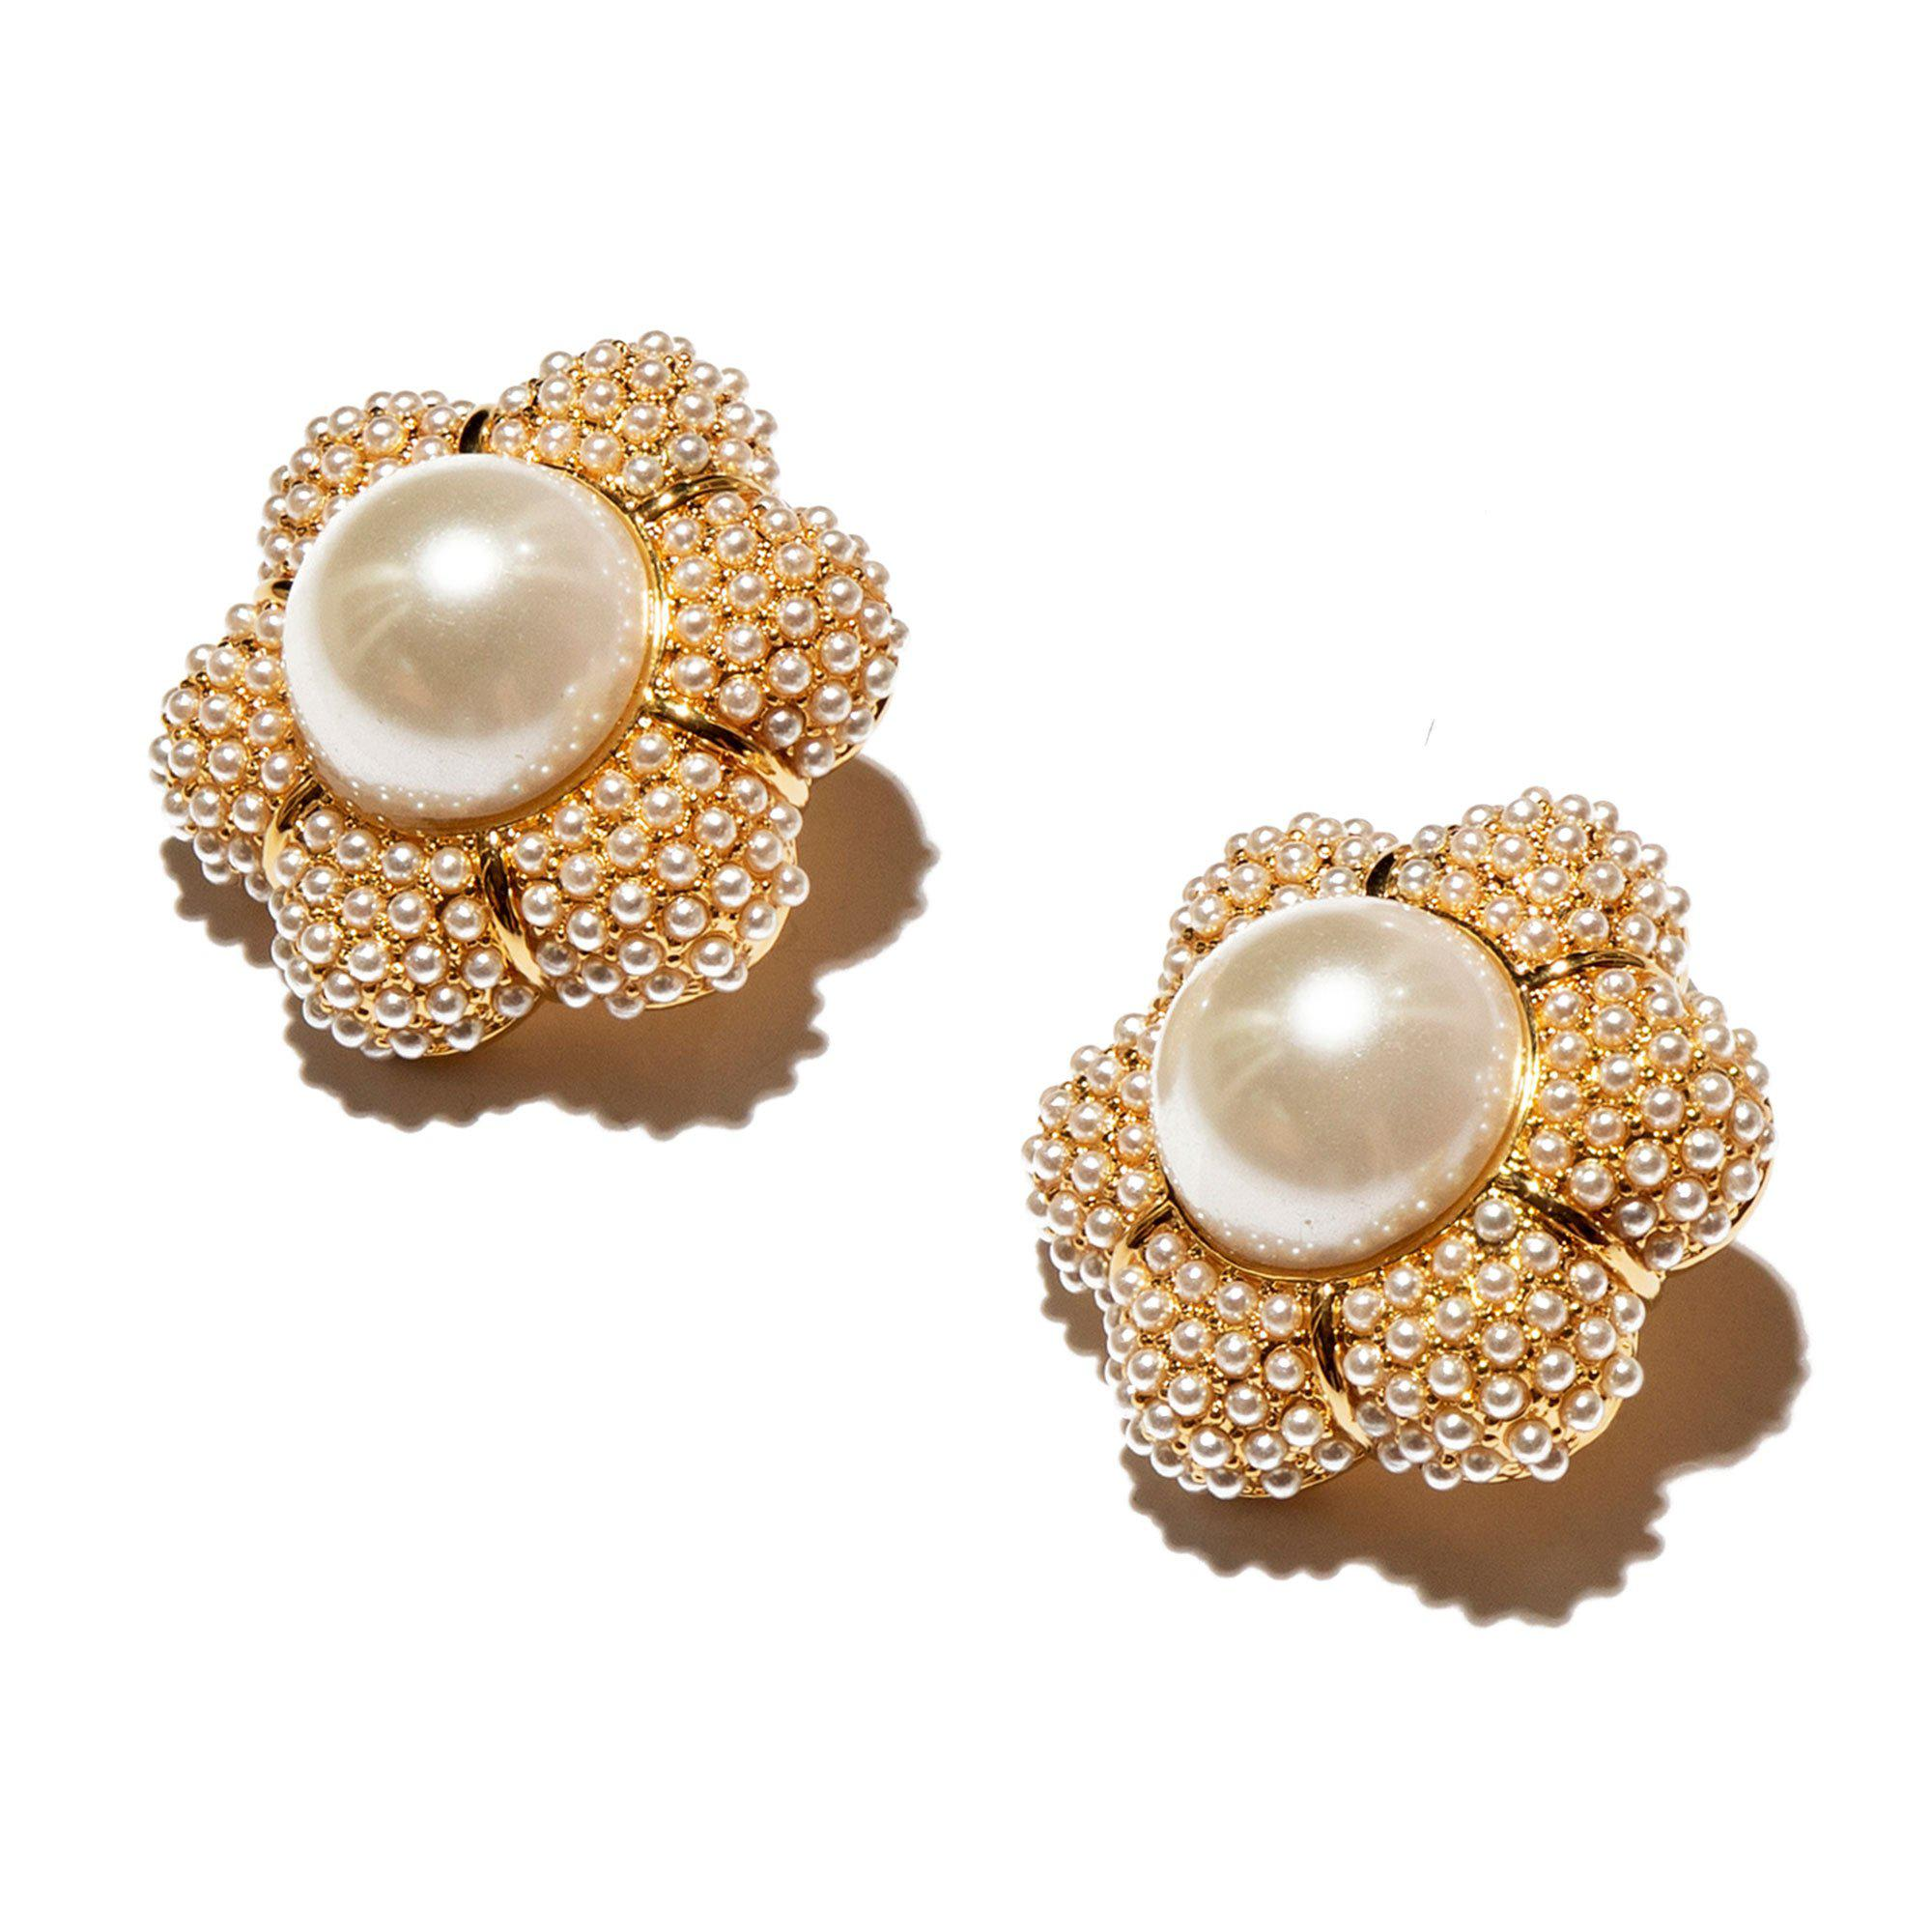 IVORY PEARL CARNATION BUTTON EARRINGS